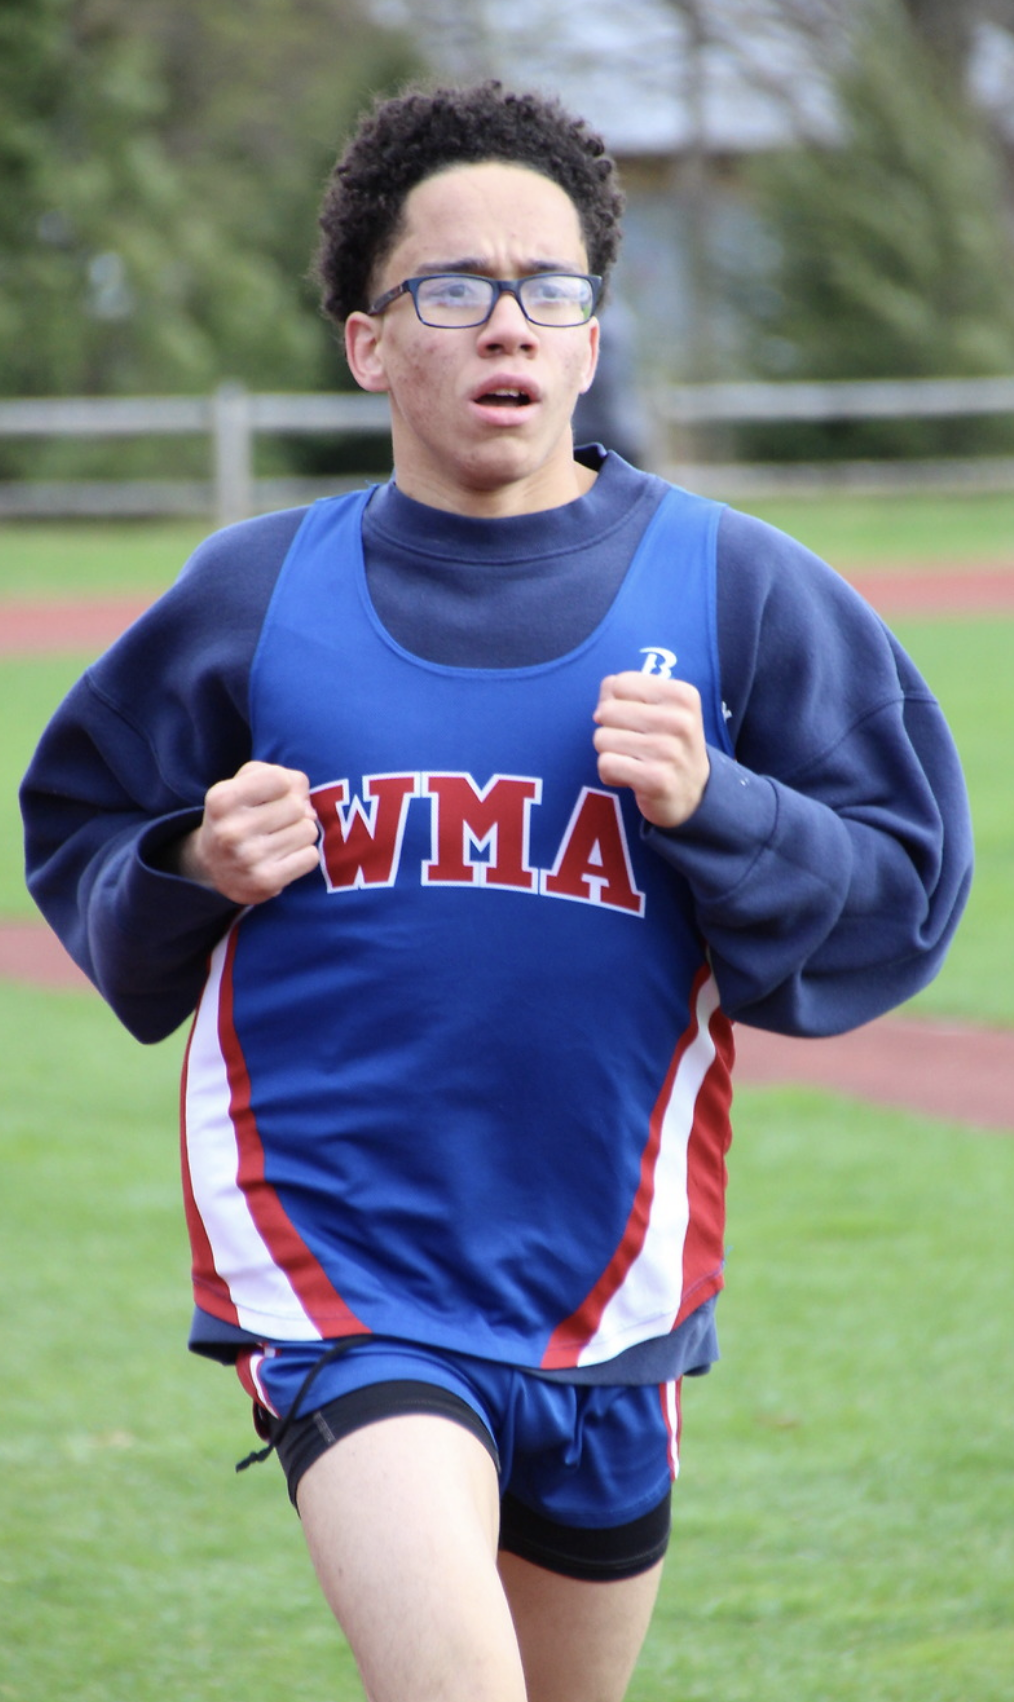 student running in track and field